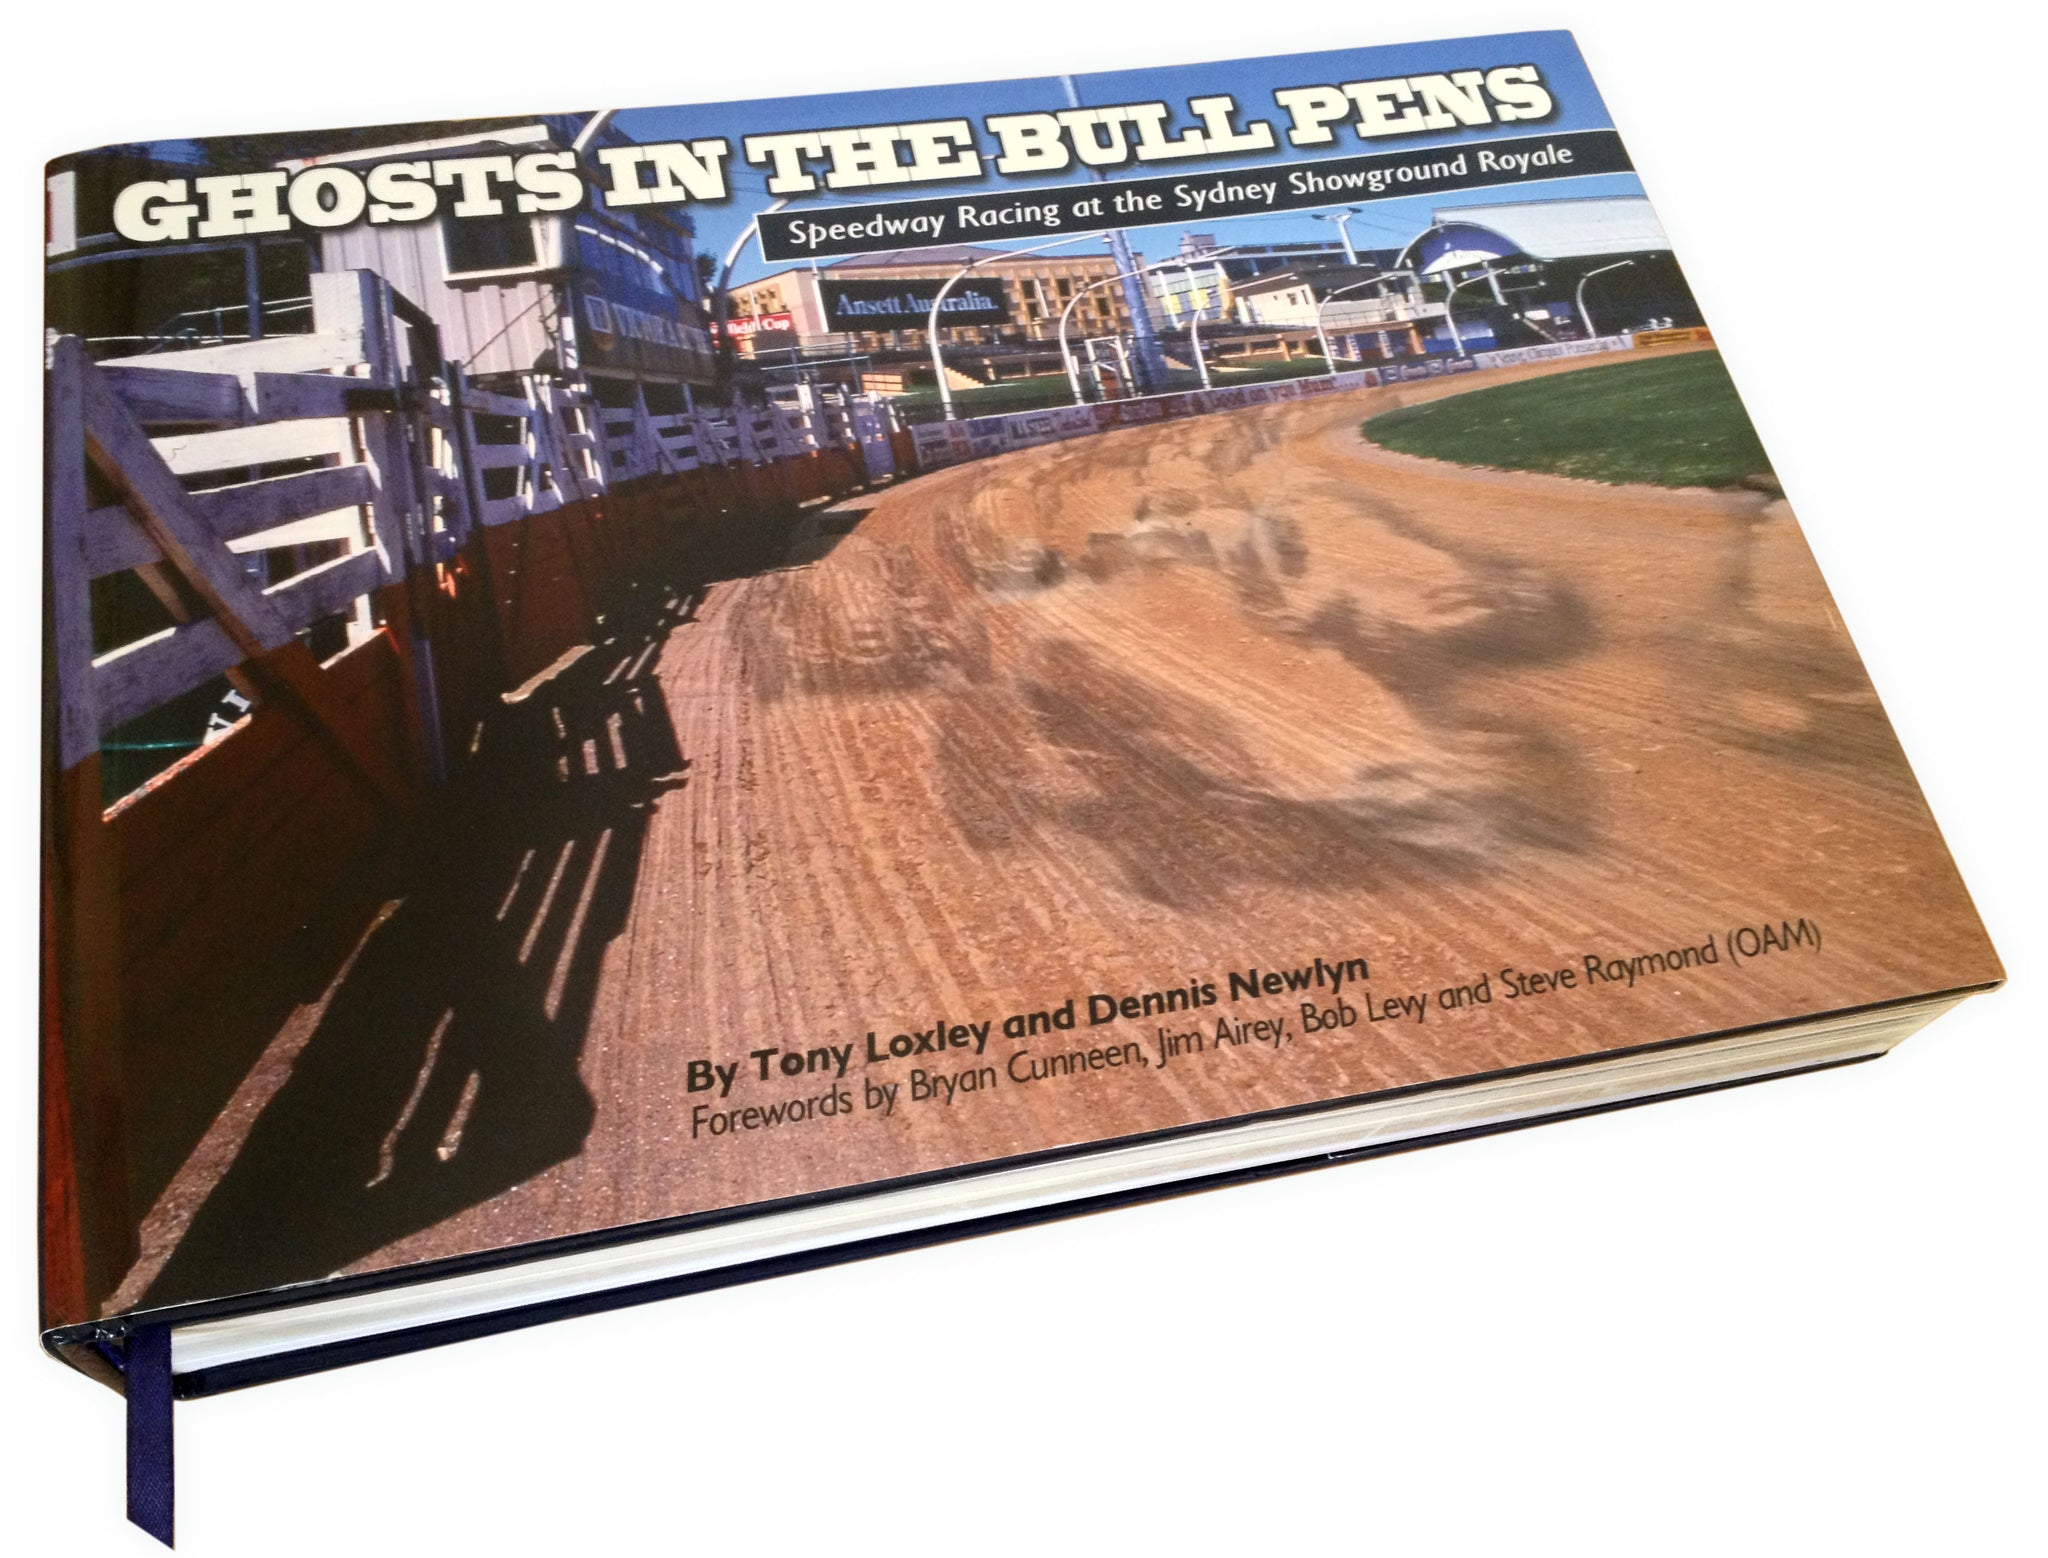 'Ghosts in the bull pens' - Speedway racing at the sydney showground royale